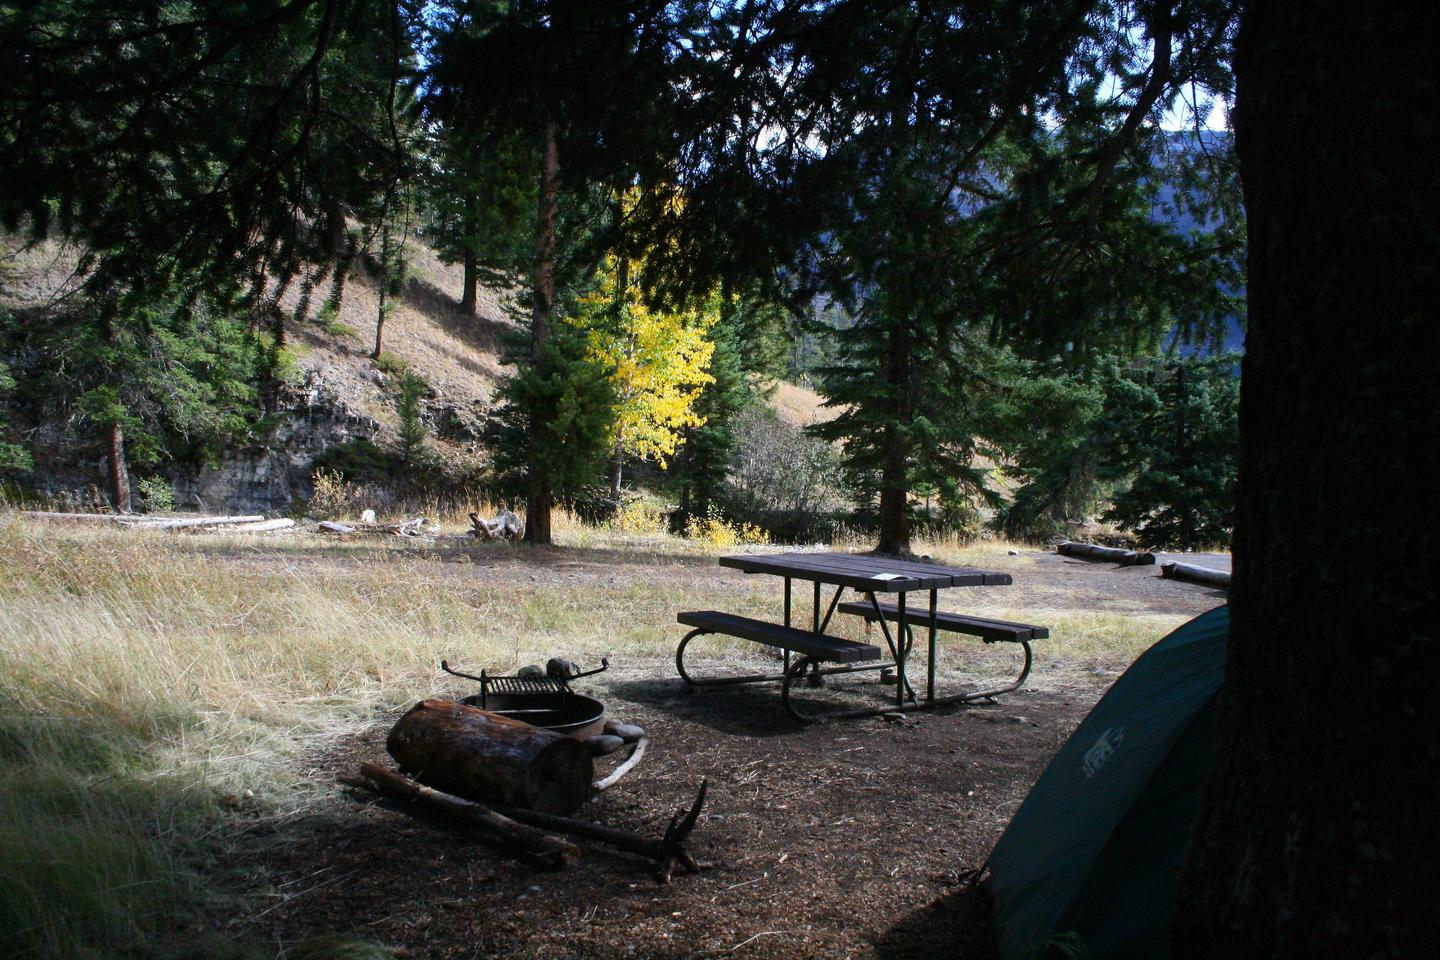 Pebble Creek Campground Site #21Pebble Creek Campground Site #21 - Walk-in site